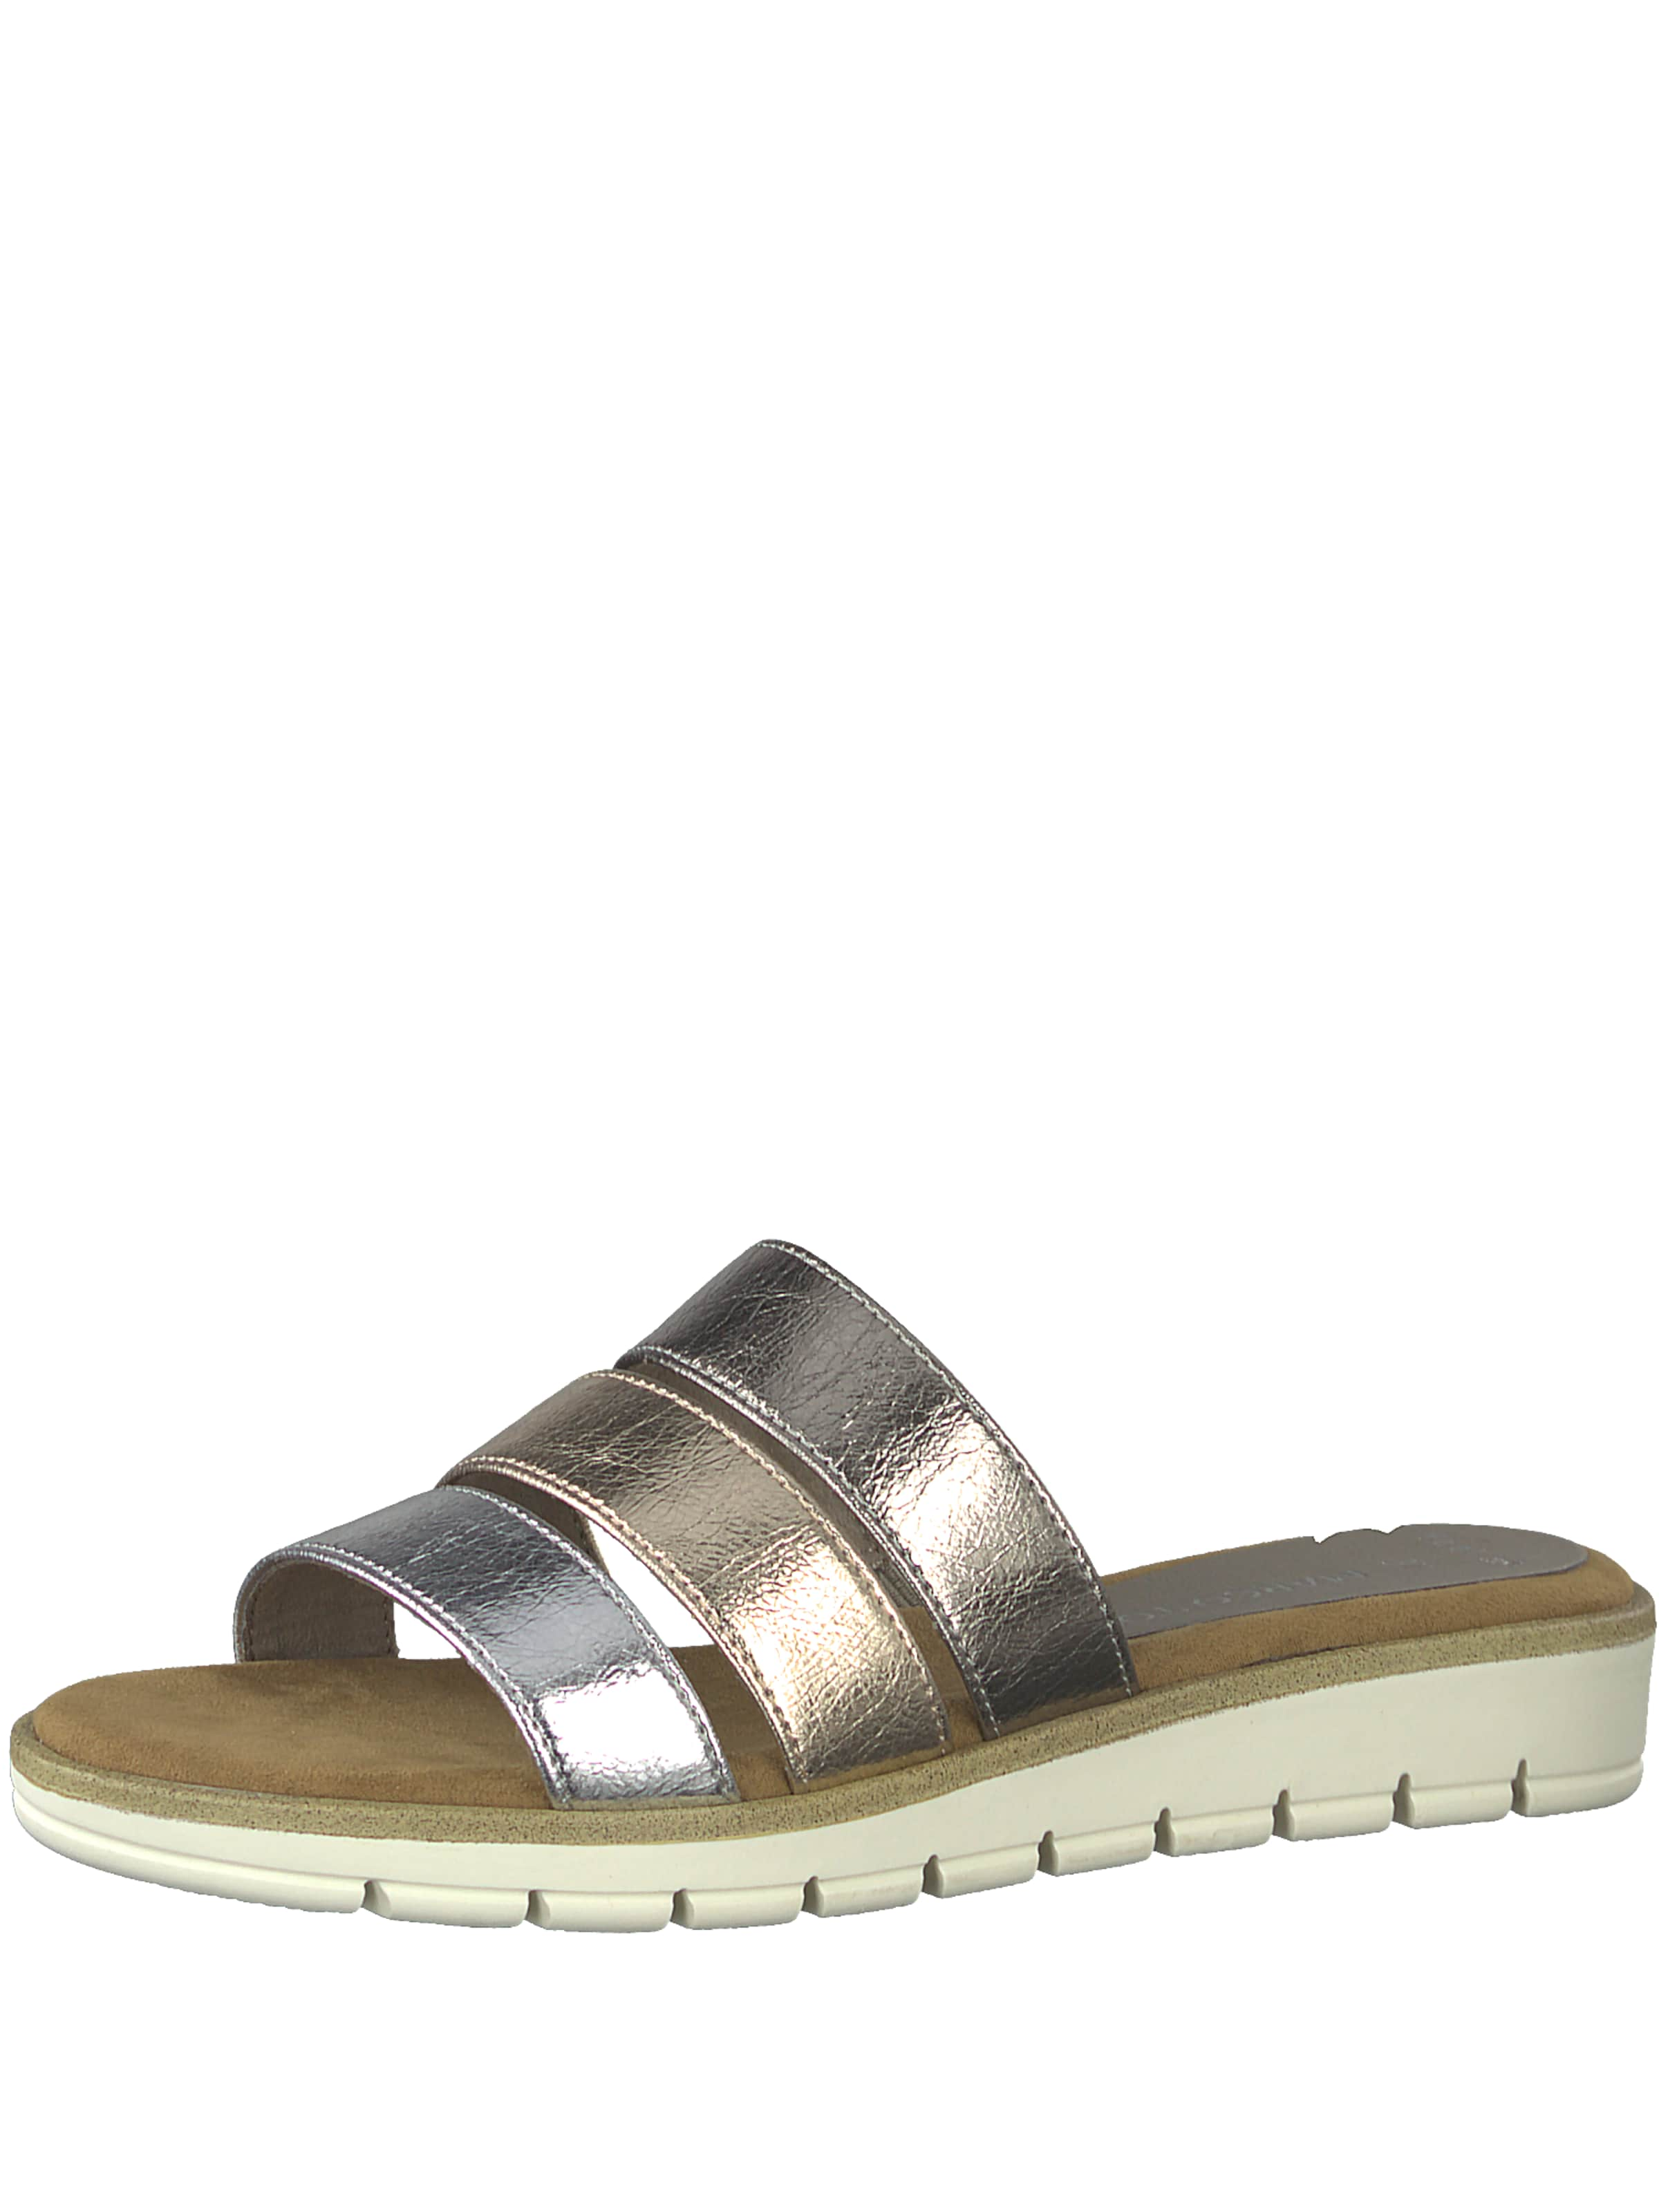 Marco Tozzi Silber Slipper Tozzi Silber Slipper Marco In In Tozzi In Slipper Marco wvmOn08N